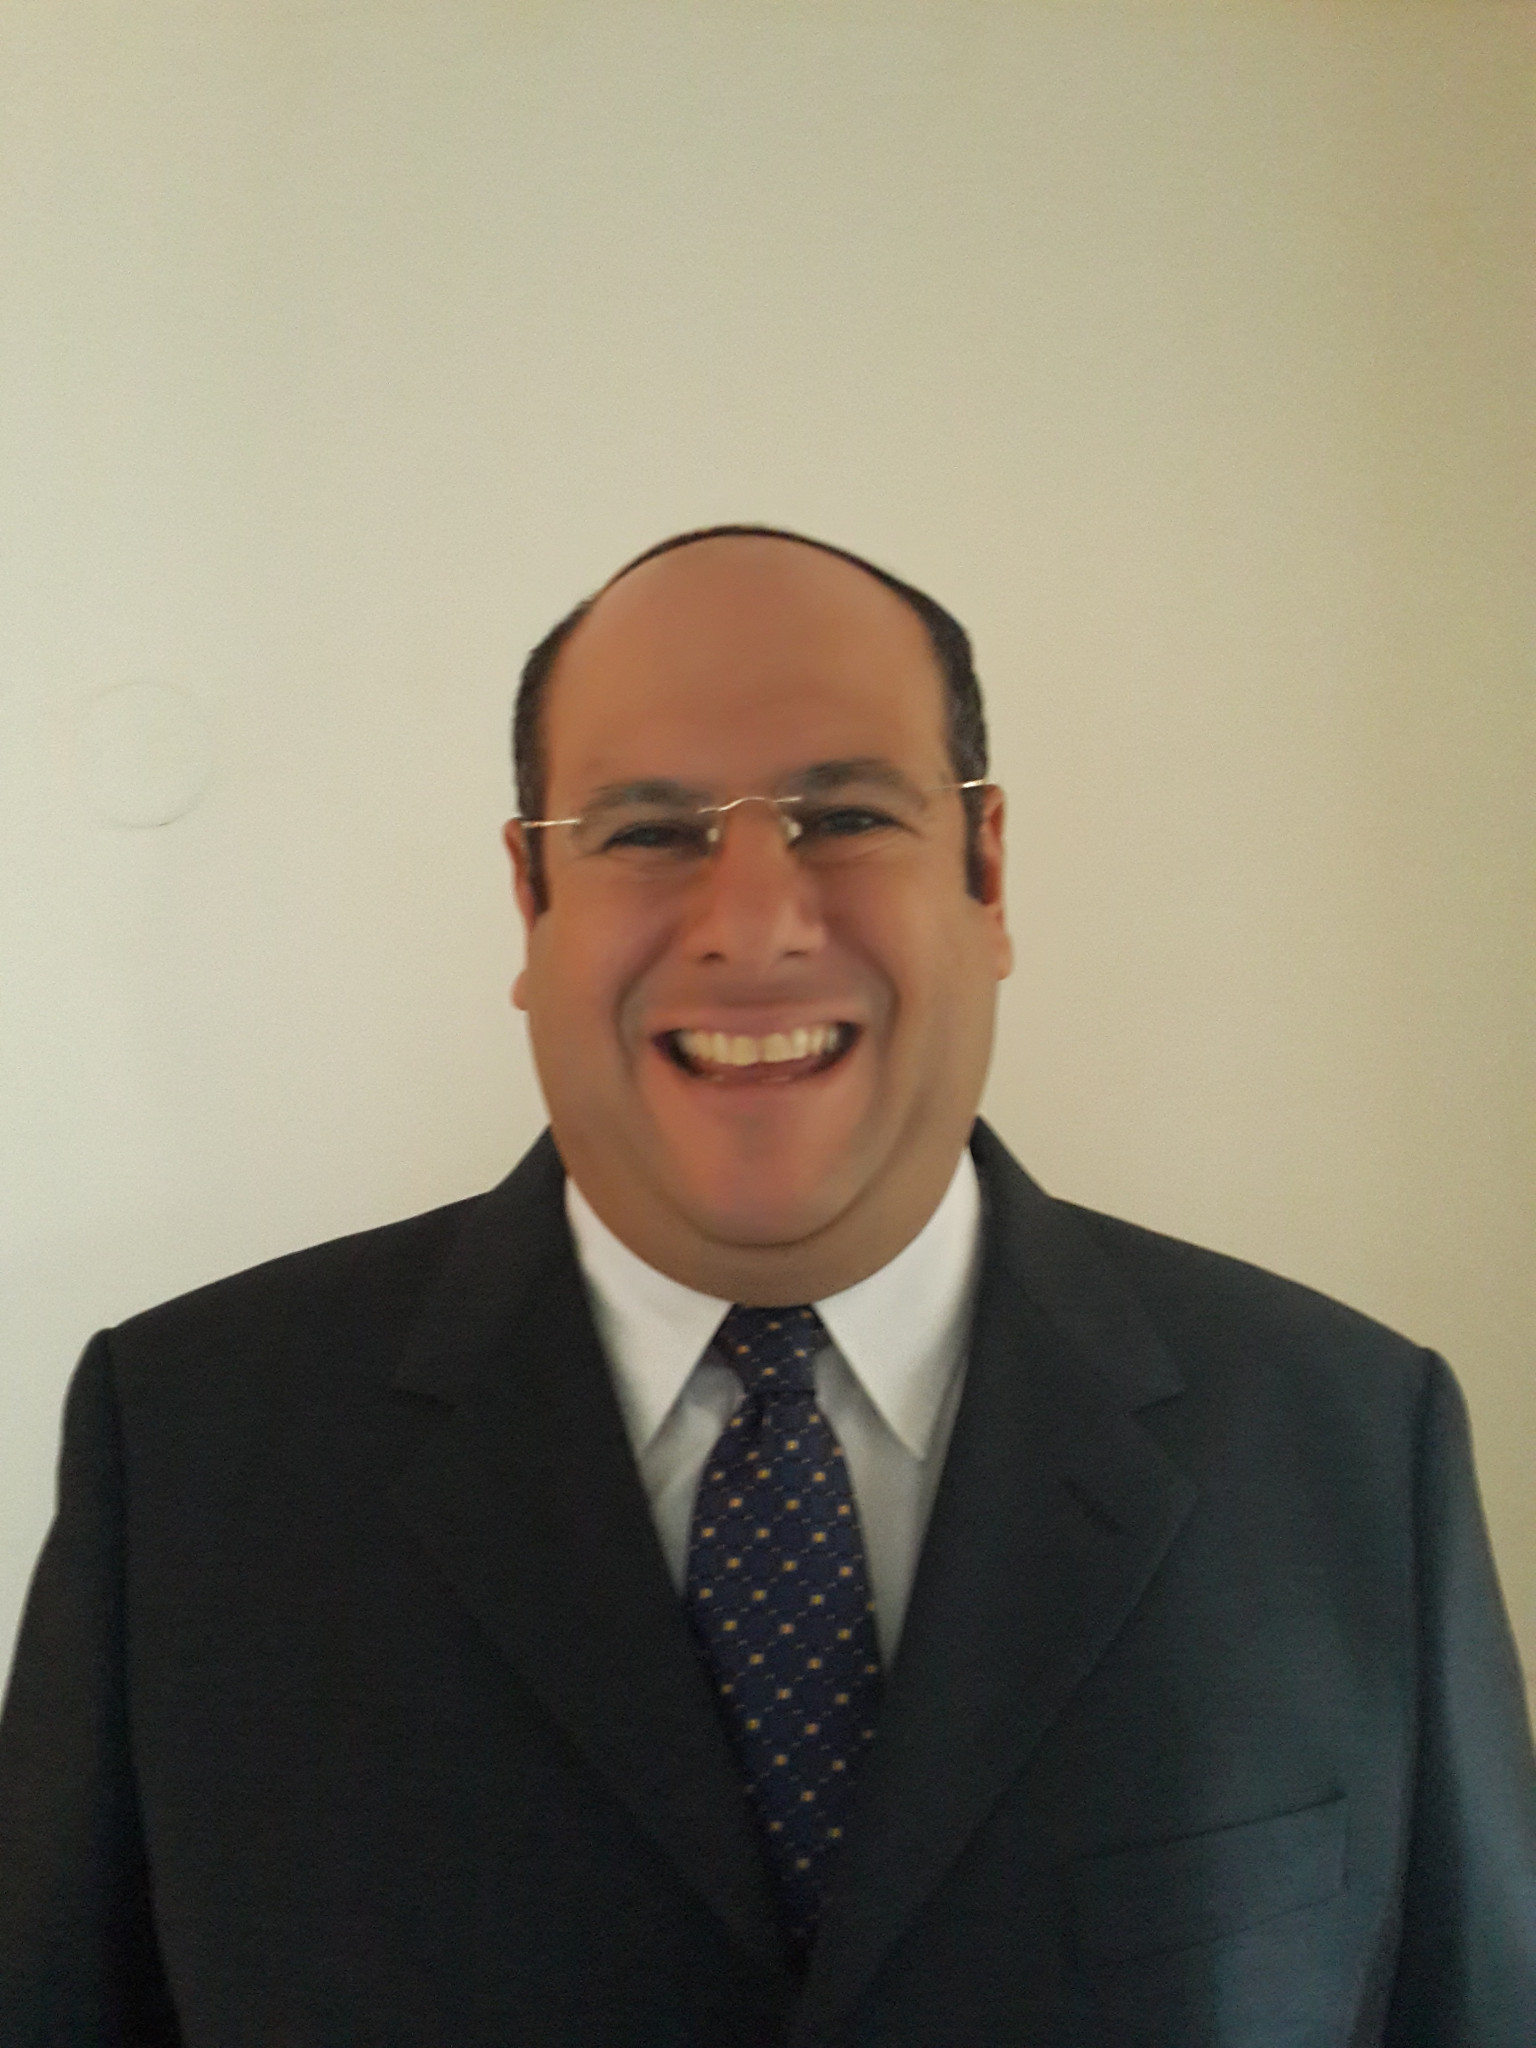 Click for more information about Yaron ben zakai